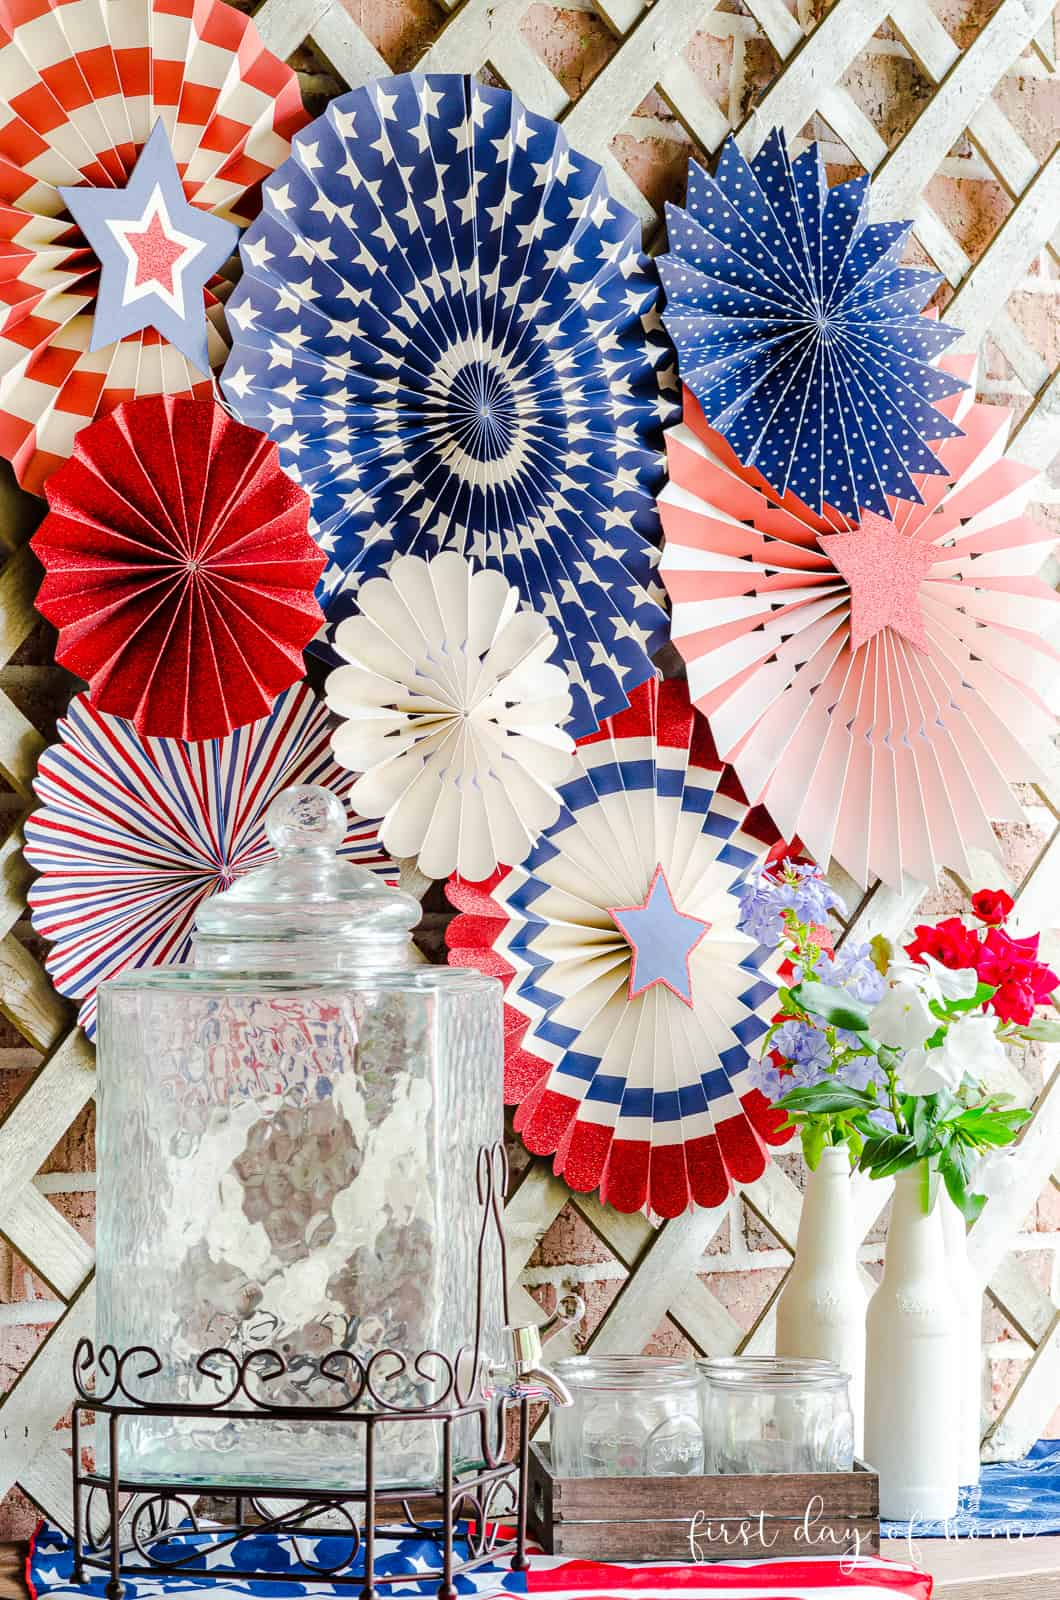 4th of July decorating ideas for outdoors